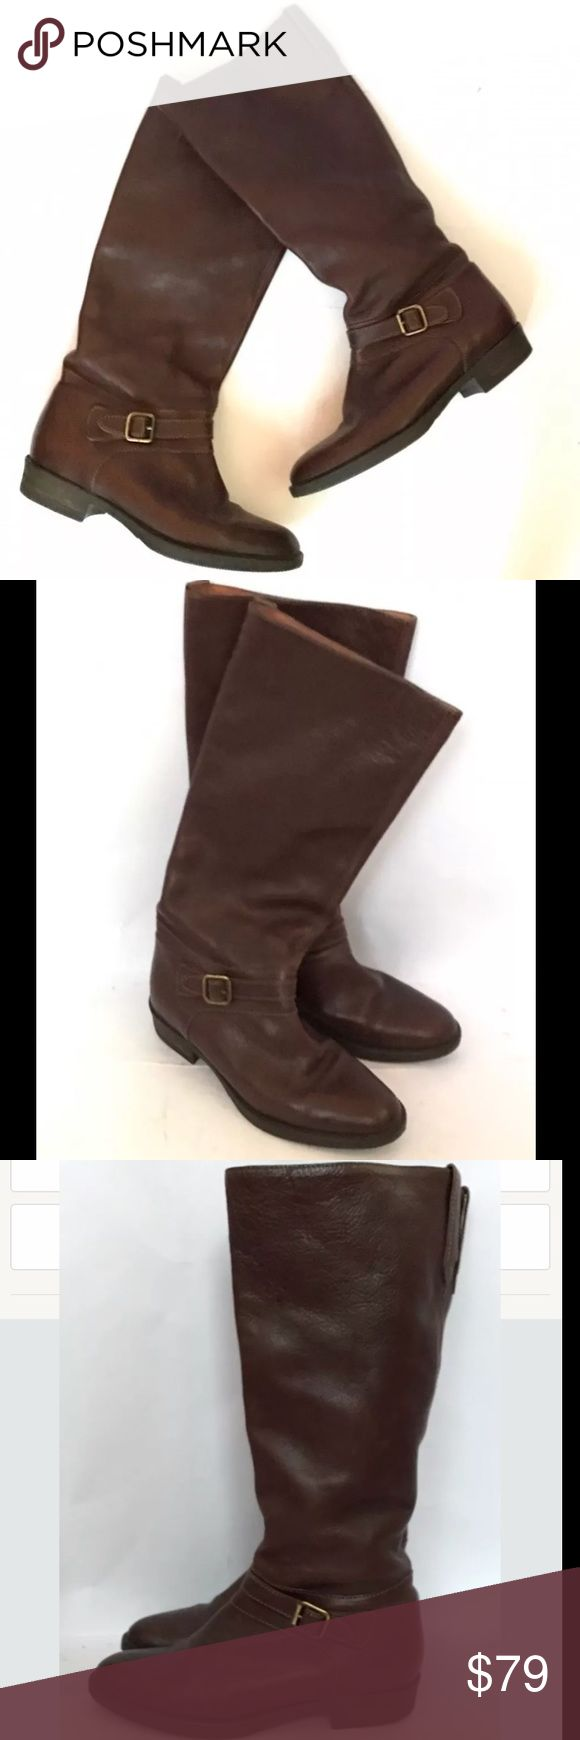 J. CREW Women's Brown Leather Boots J. Crew distressed leather boots. Size 6 . In great condition. If you are more like a size 6.5 they will not fit. These boots are good for a size 6 or a 5.5 . The leather quality is so good. Rubber sole. Leather upper and leather lining. J. Crew Shoes Combat & Moto Boots